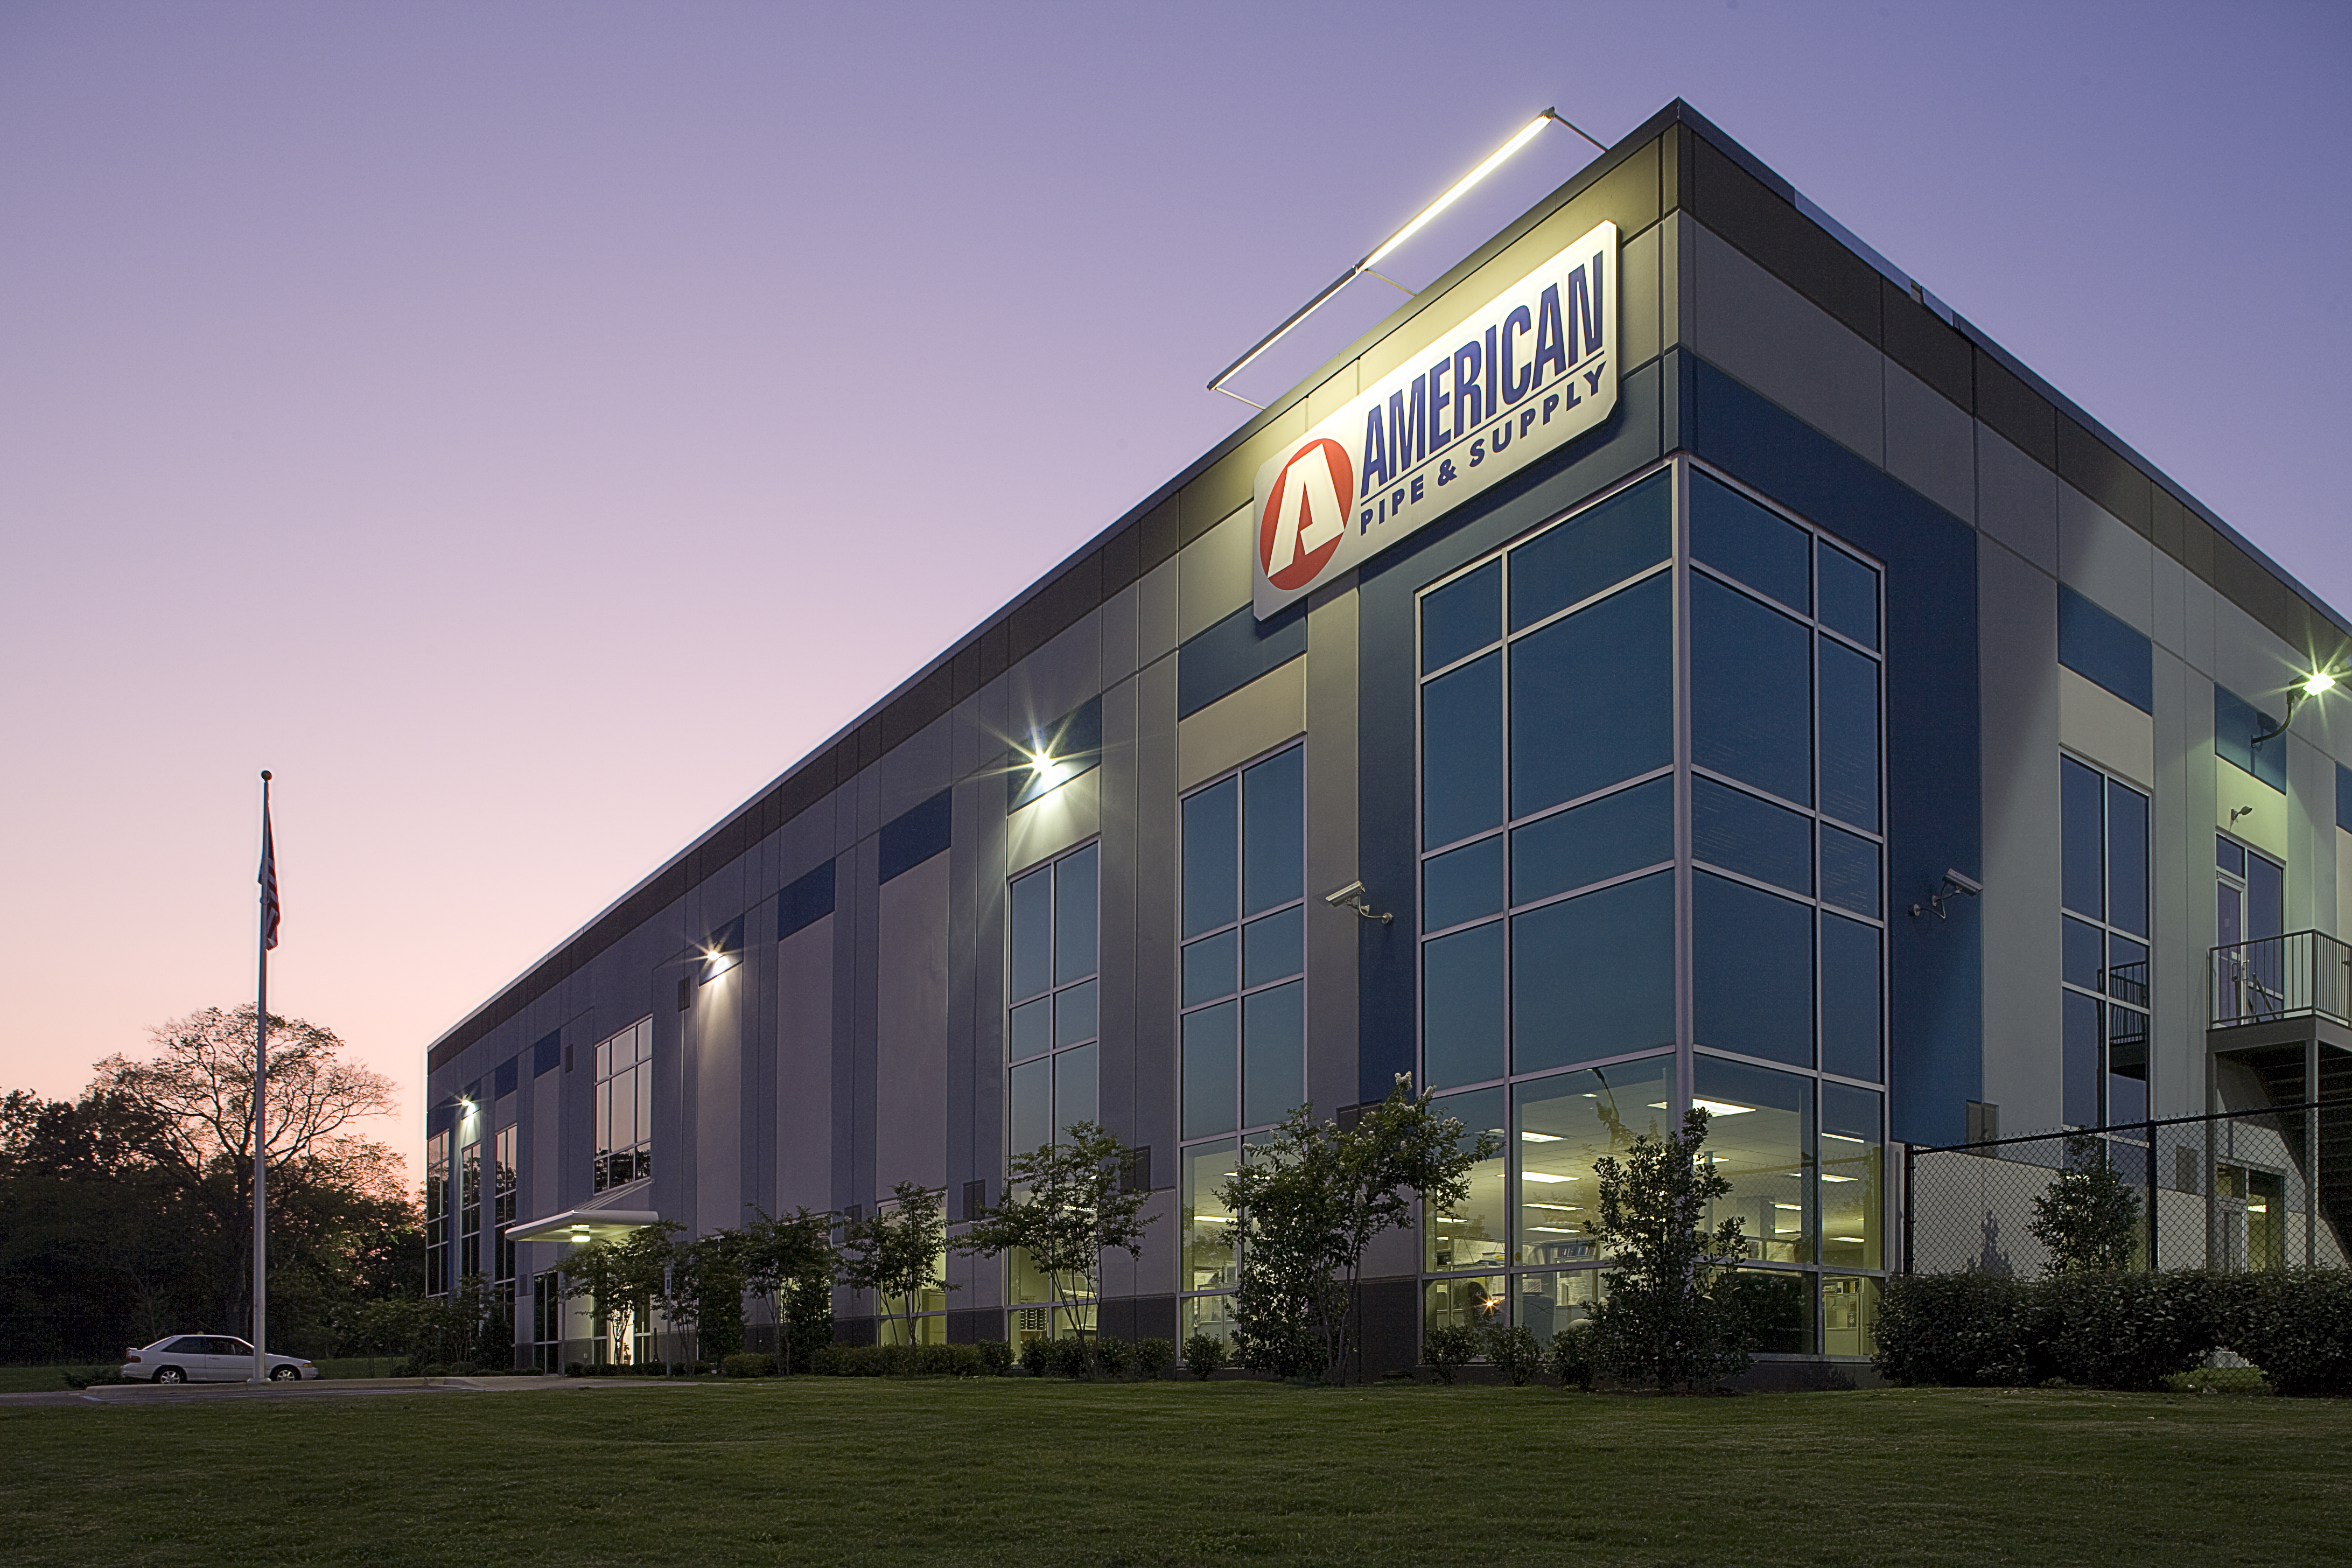 American Pipe & Supply exterior photo